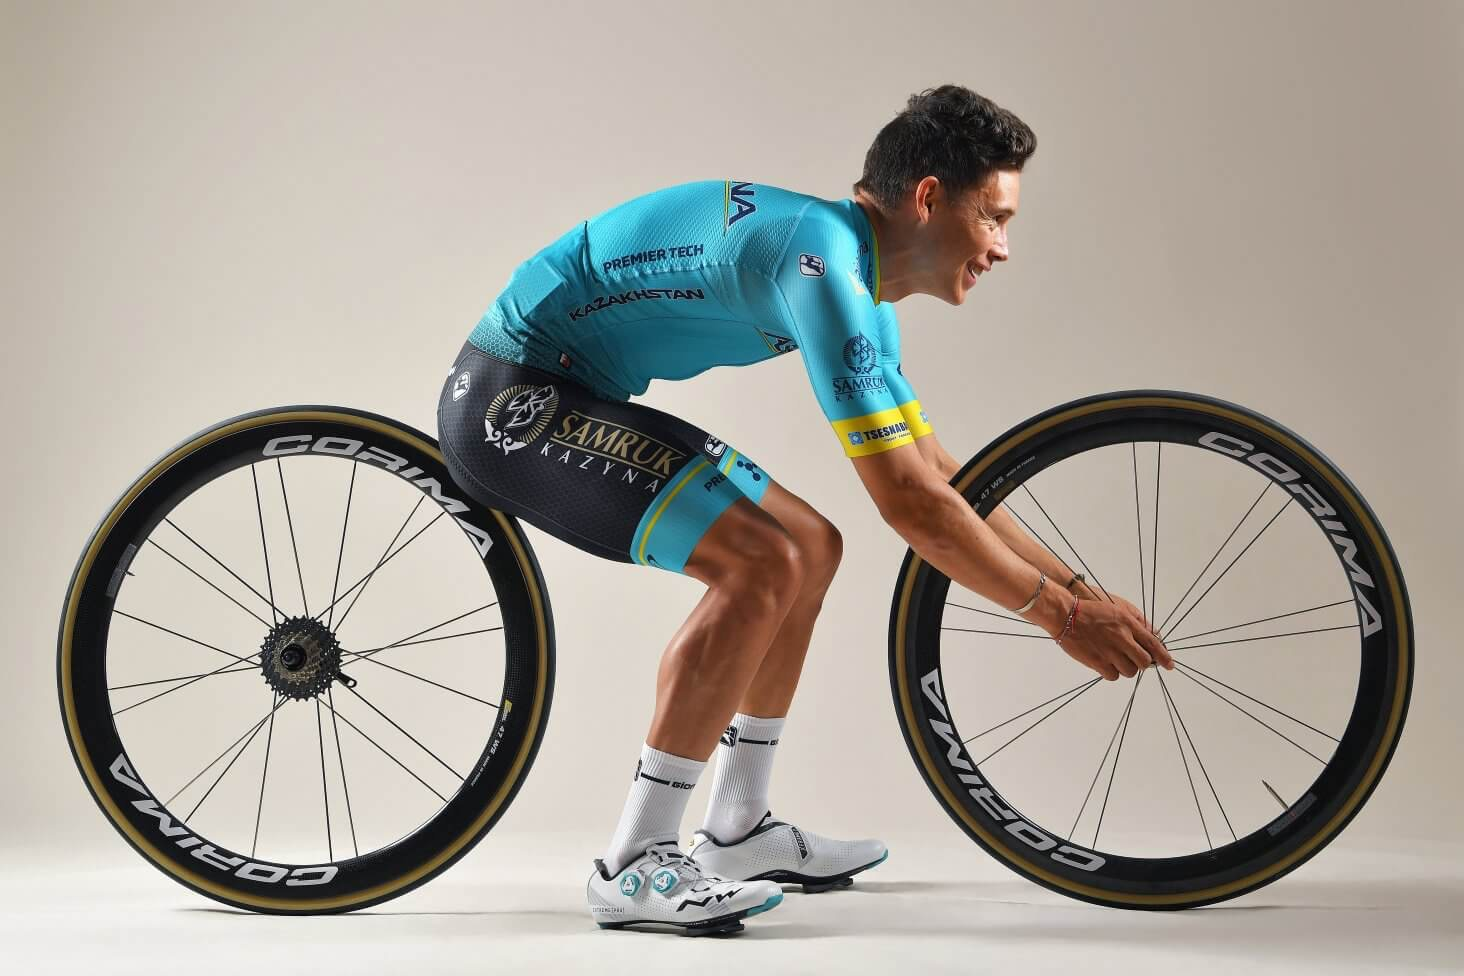 ASTANA PRO TEAM AIMS BIG WITH NORTHWAVE EXTREME PRO